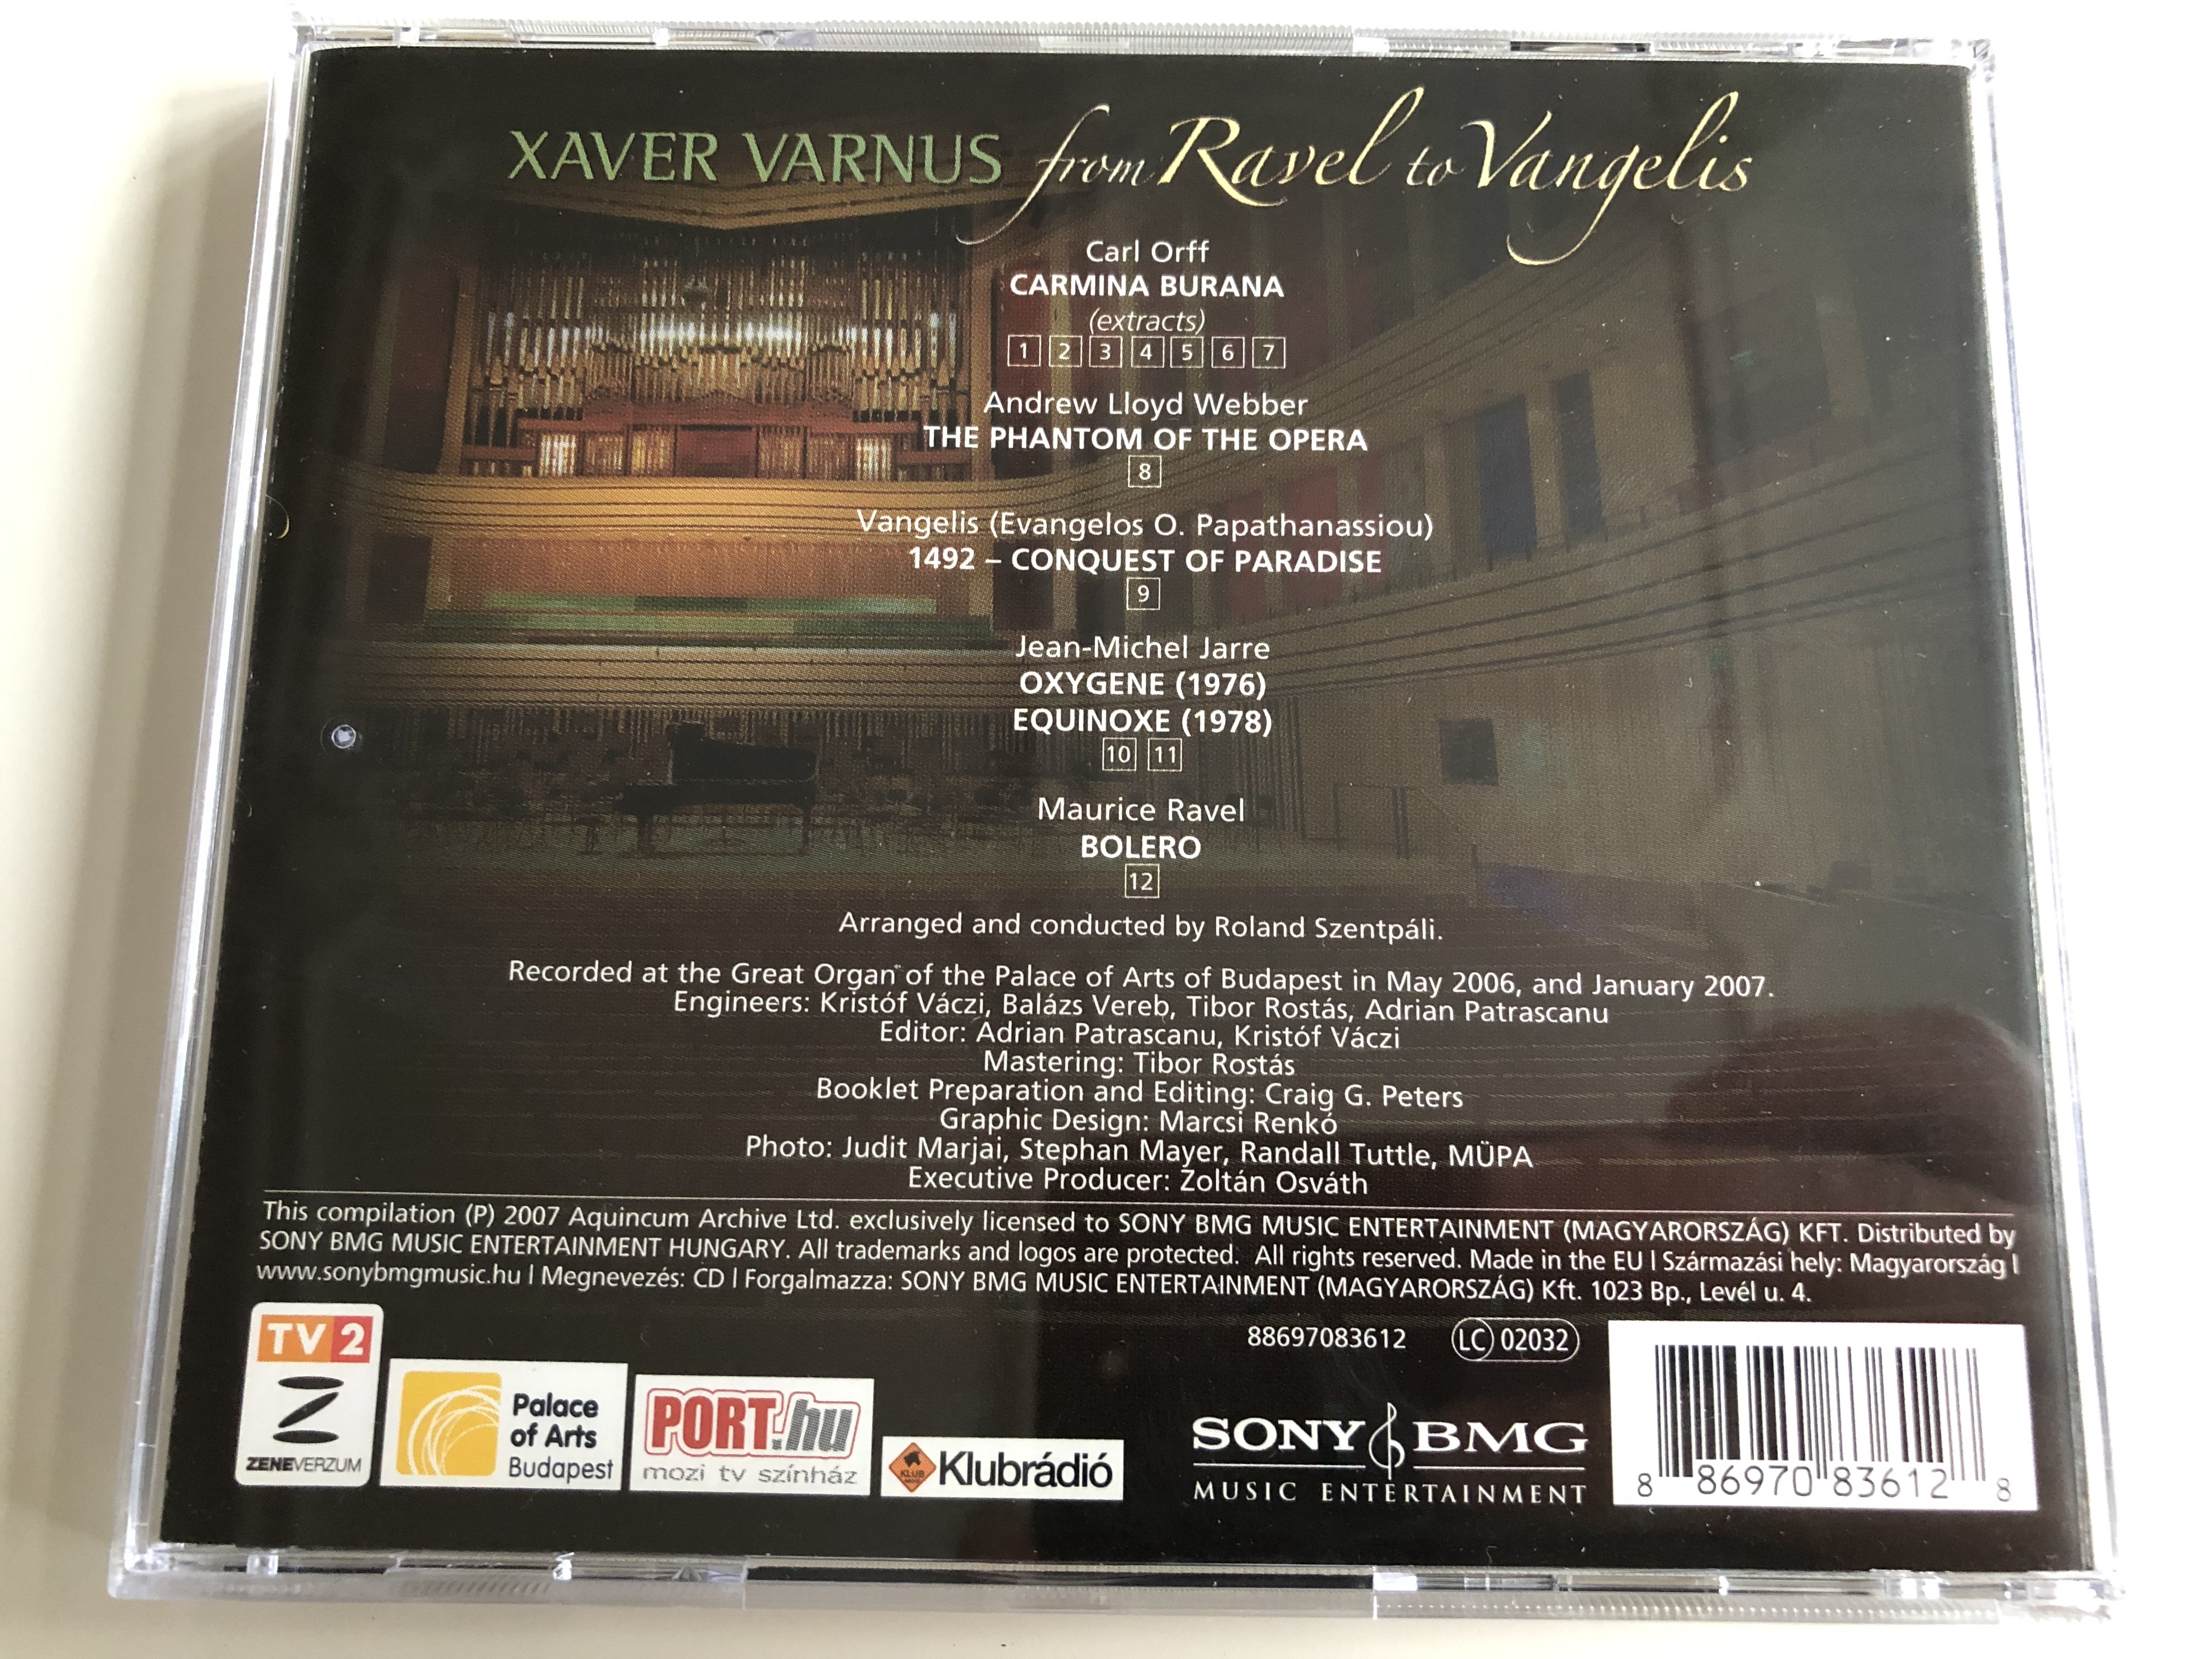 -xaver-varnus-the-legendary-organist-from-ravel-to-vangelis-featuring-sir-georg-solti-brass-ensemble-talamba-percussion-group-audio-cd-2007-sony-bmg-8-.jpg